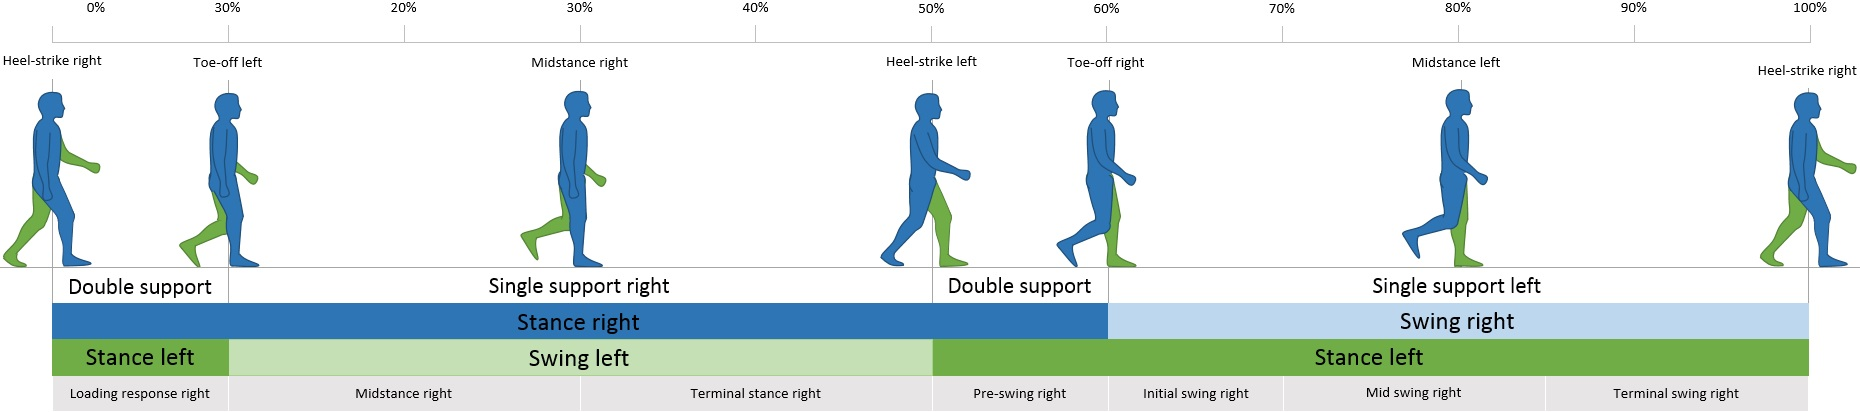 The steps that make up the human walking cycle. Order of steps: heel-strike right, toe-off left, midstance right, heel-strike left, toe-off right, midstance left, hell-strike right. The body spends the time between heel-strike and toe-off with double support and the midstances are single-leg support.